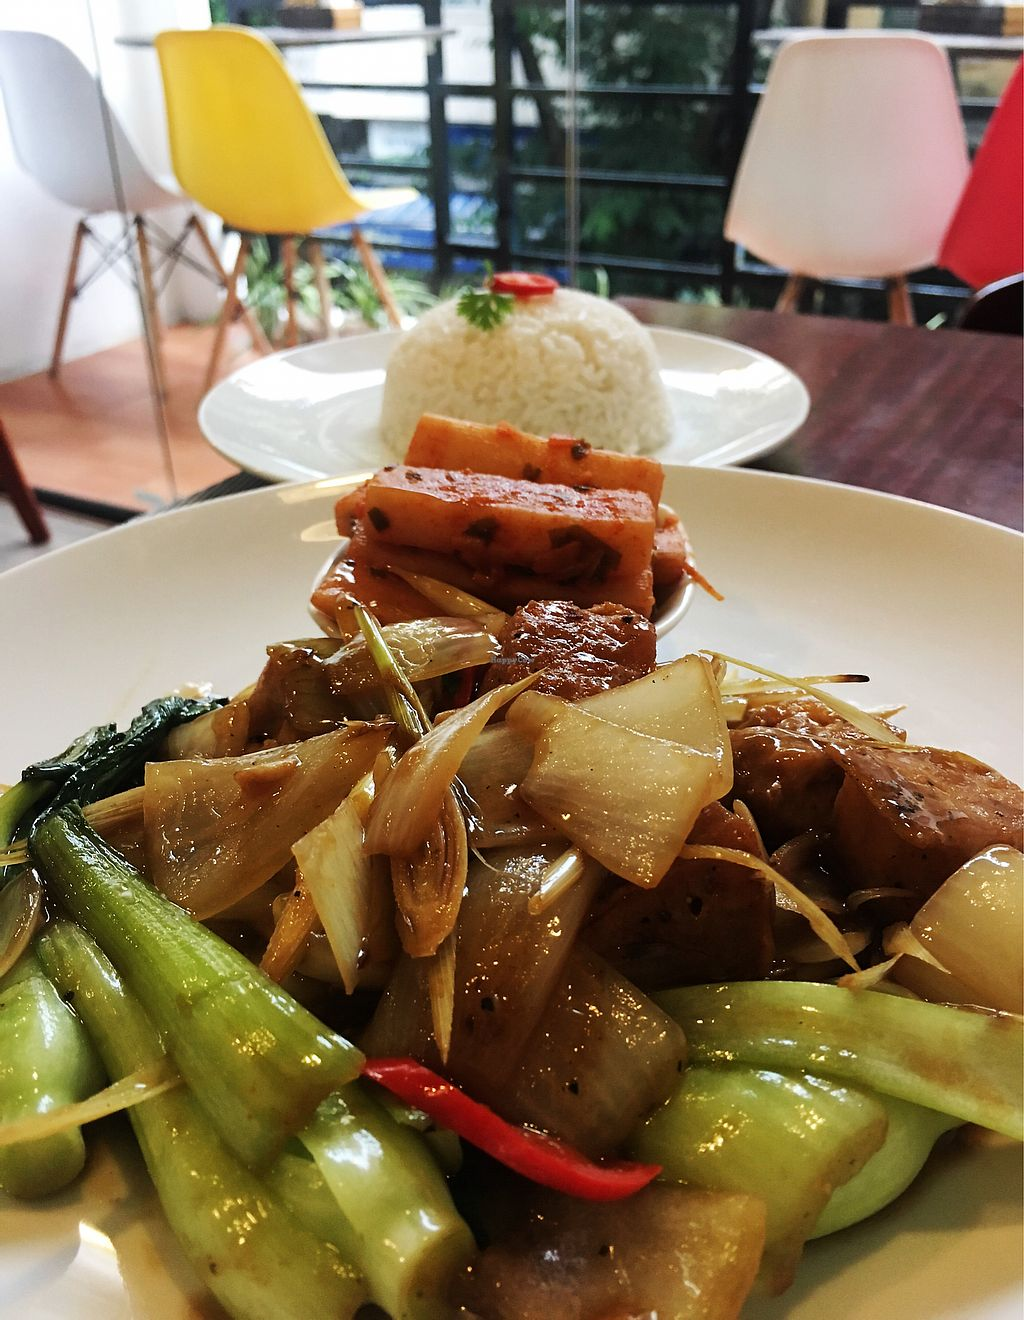 "Photo of The Veg - Organic Vego and Tea  by <a href=""/members/profile/SorayaViana"">SorayaViana</a> <br/>Stir fried tofu with chili and lemongrass <br/> September 30, 2017  - <a href='/contact/abuse/image/89997/309964'>Report</a>"